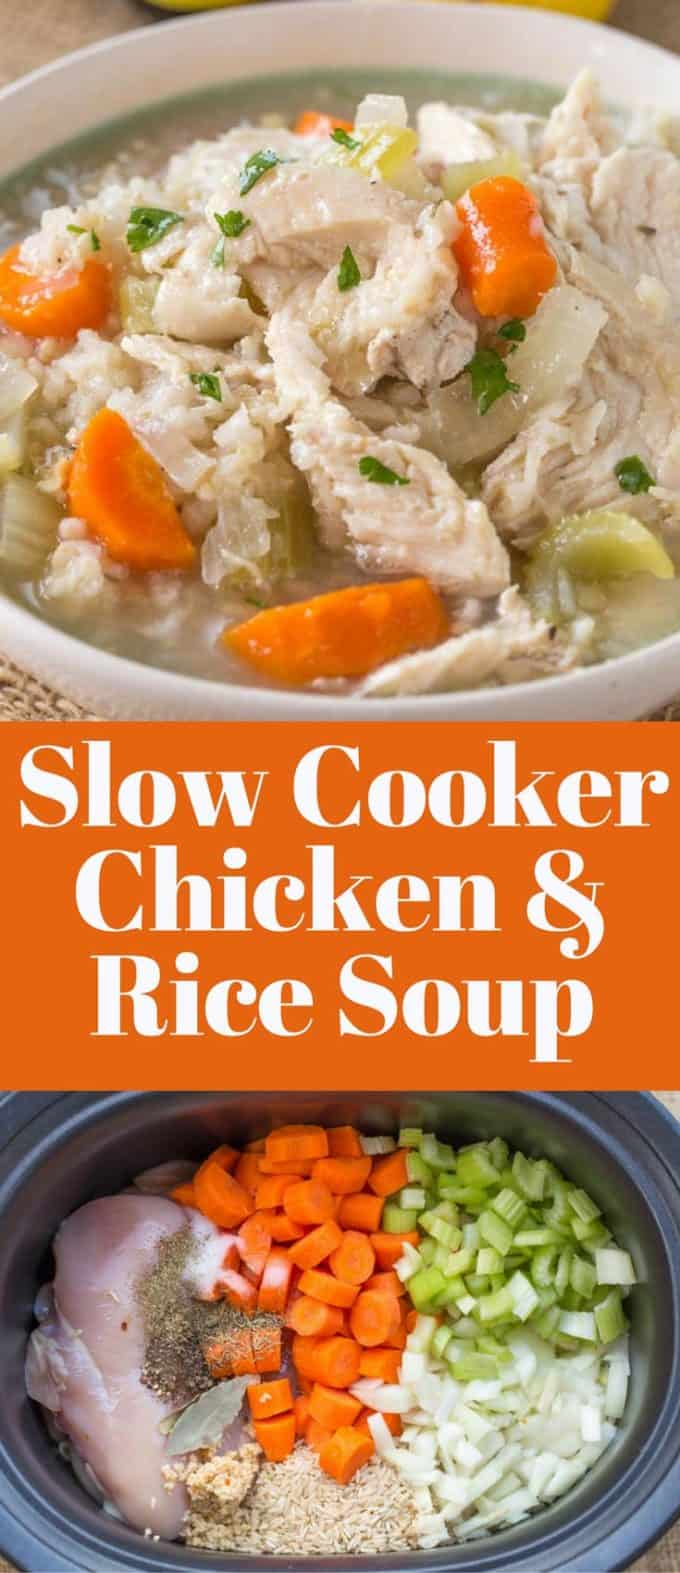 Slow Cooker Chicken and Rice Soup with brown rice and chicken breasts, this soup is comforting and warm with no extra added fat and with the use of lemon extract it can be made from pantry ingredients any time of year.